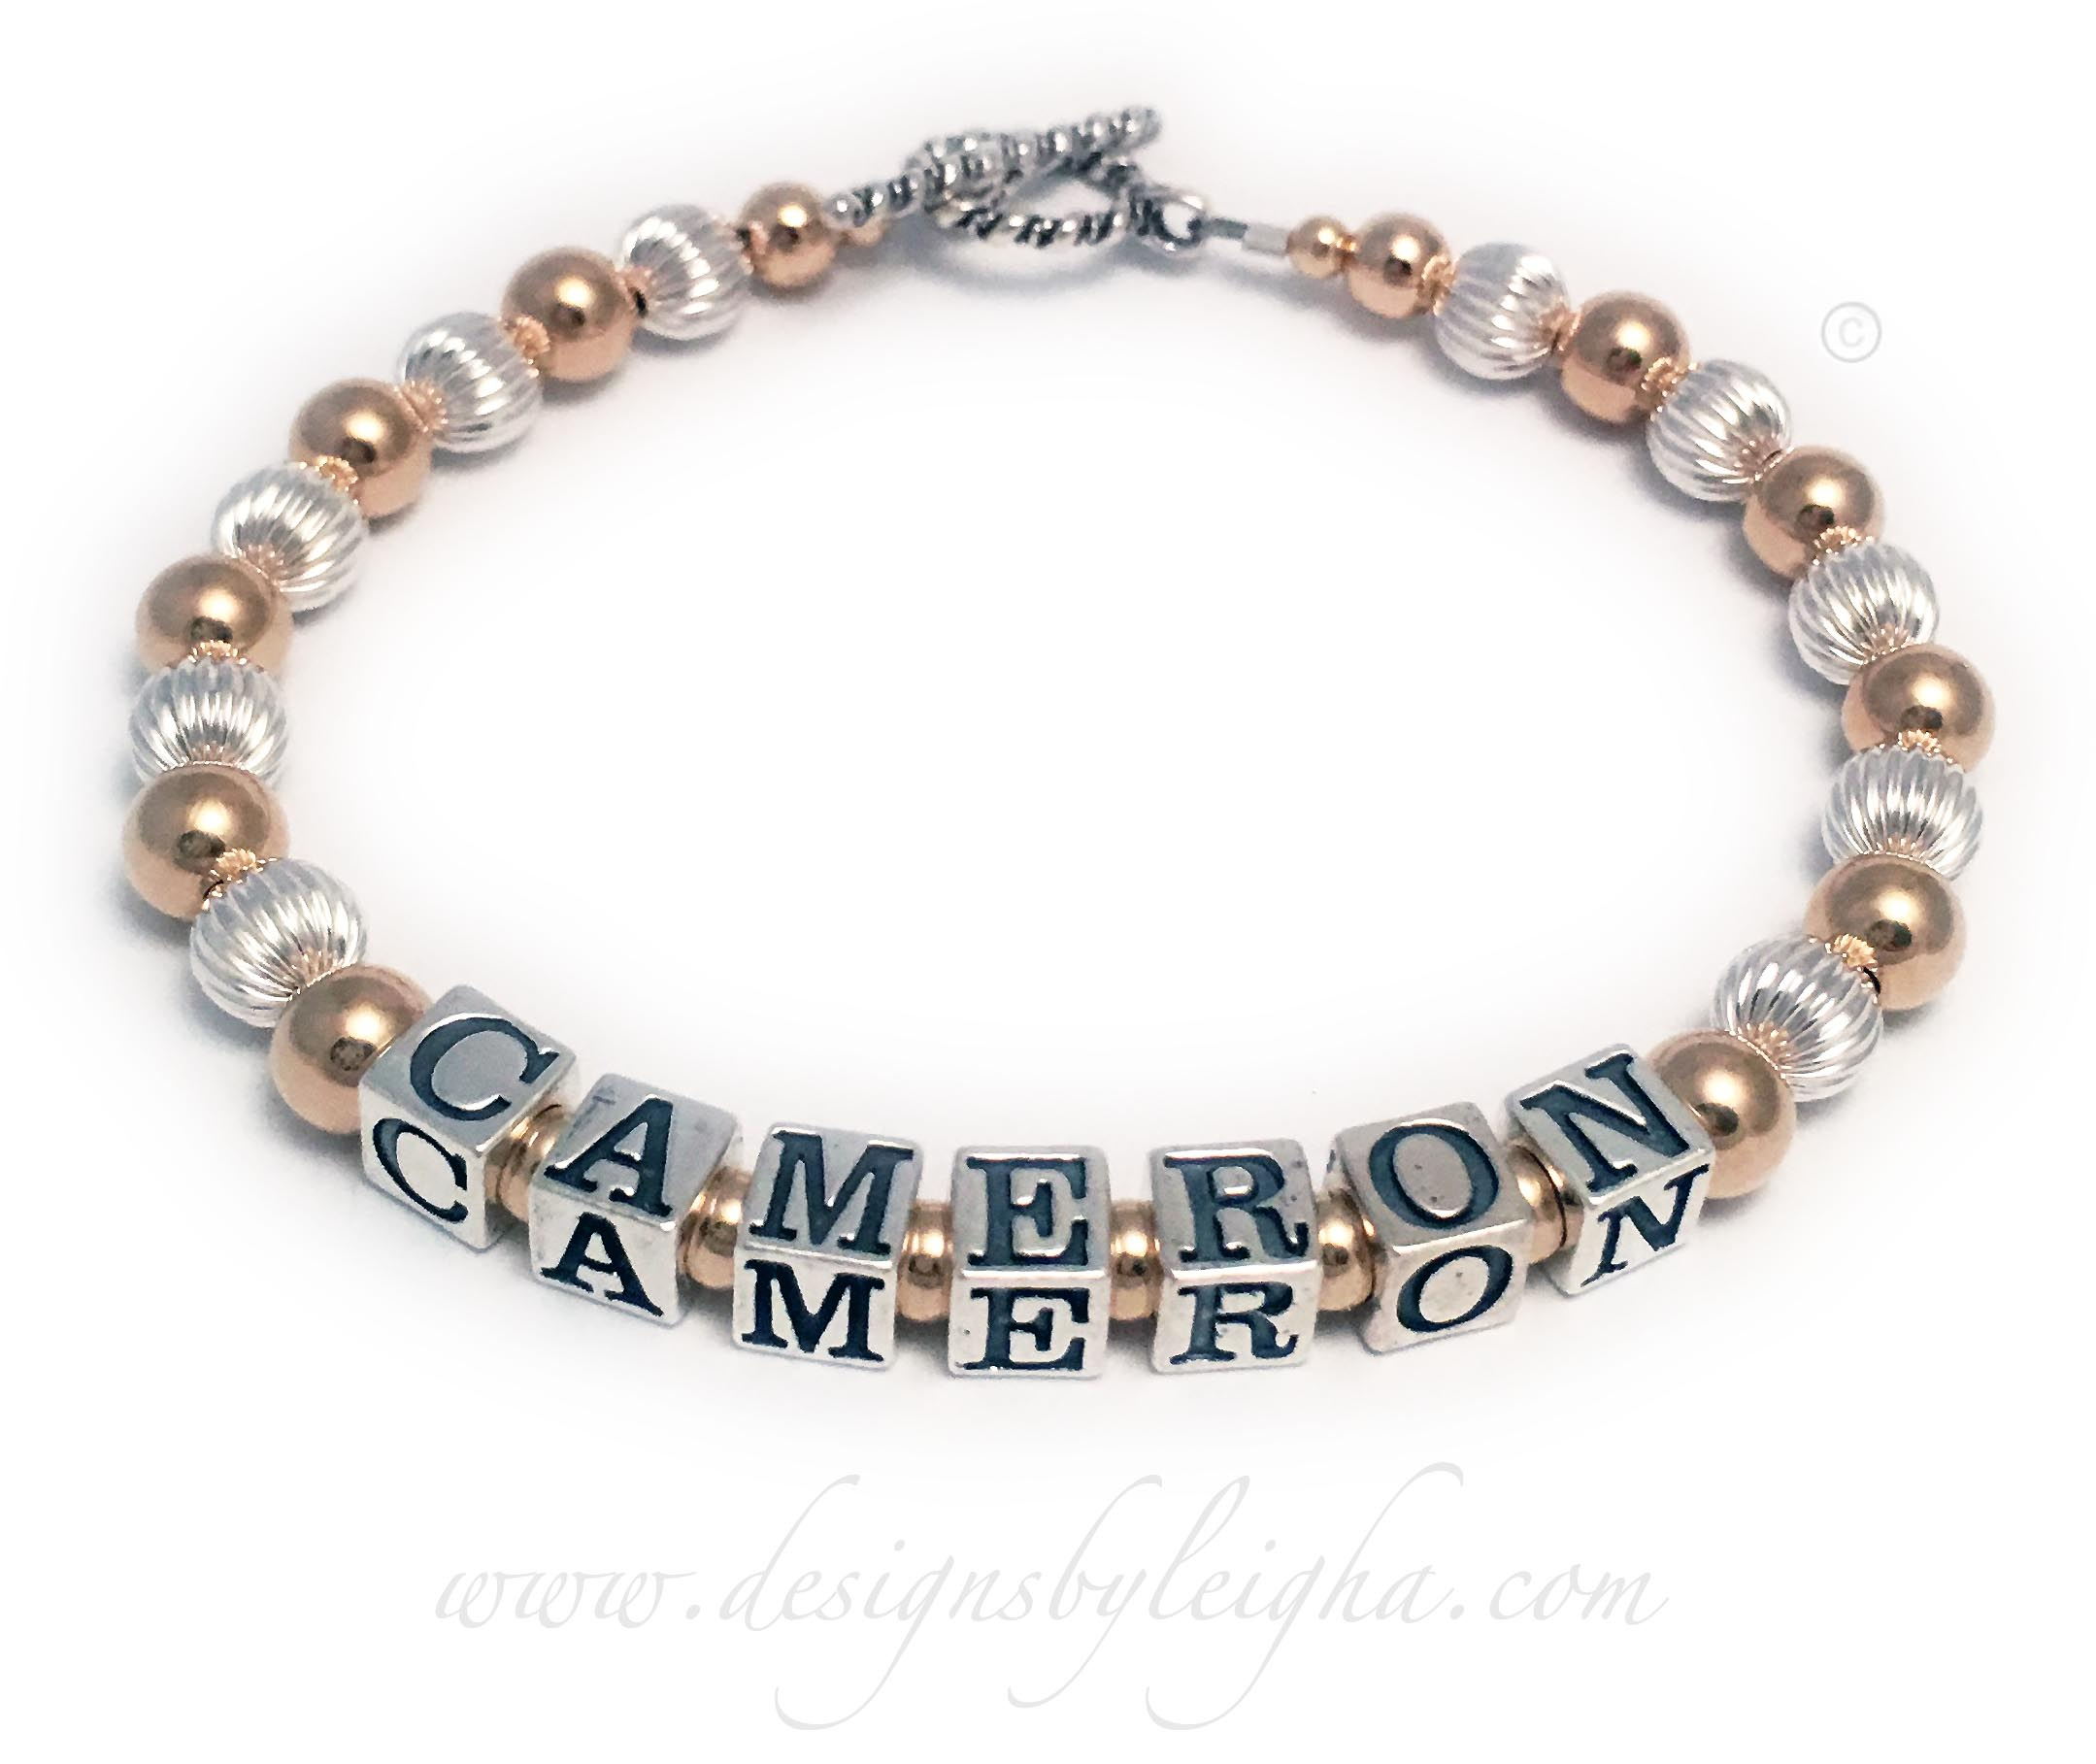 Gold Mother Bracelet with Cameron and no birthstone crystals.